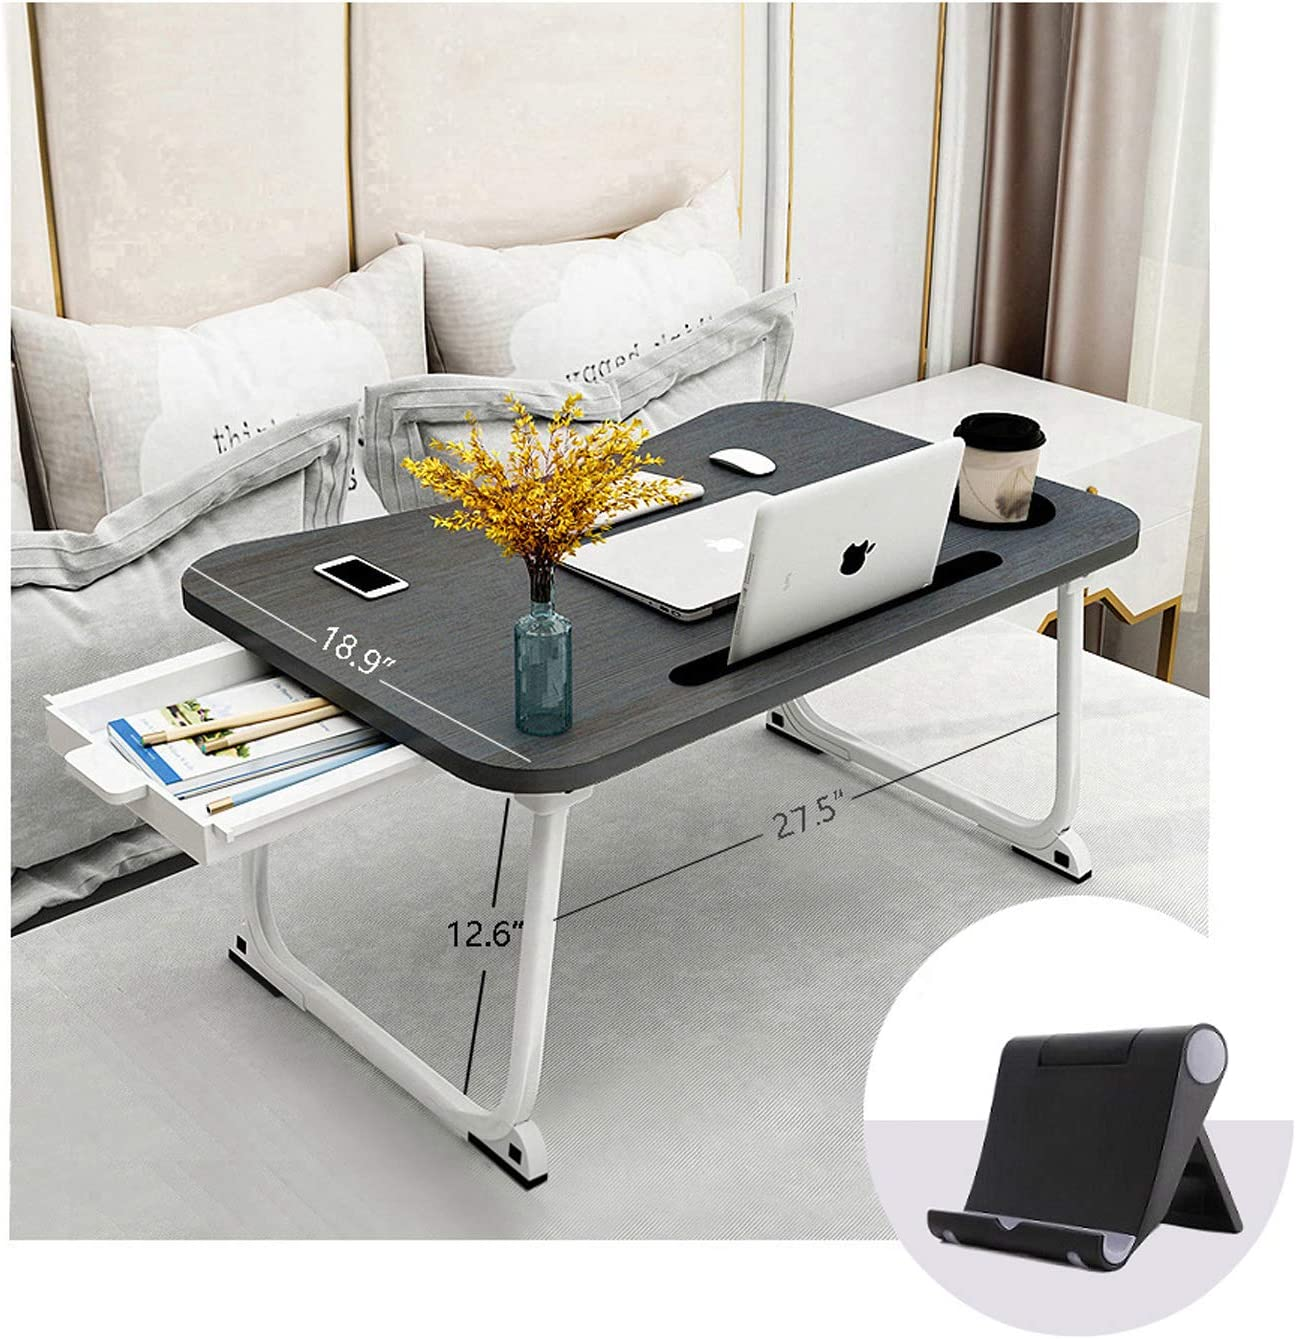 XXL Foldable Lap Tray Laptop with Cup Holder Portable Laptop Stand with Storage Drawer and Phone Stand 70x48x32cm Ergonomic Standing Laptop Tray in Bed//Couch//Sofa//Office Laptop Table for Bed